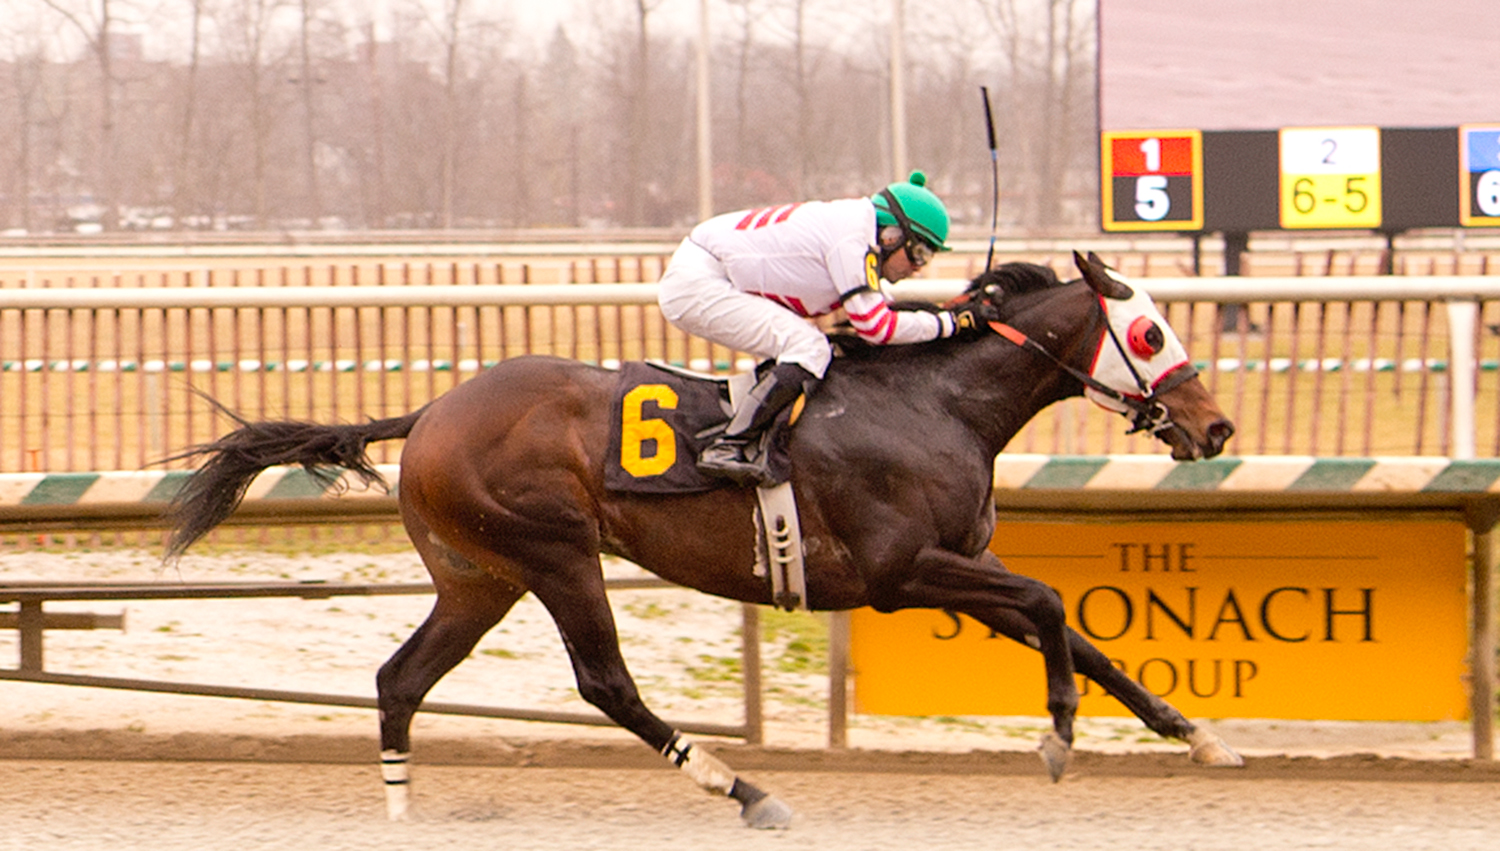 Jockey Gilberto Delgado guides Tiz Unbeatable to his second lifetime win January 20th at Laurel. Photo by Jim McCue.